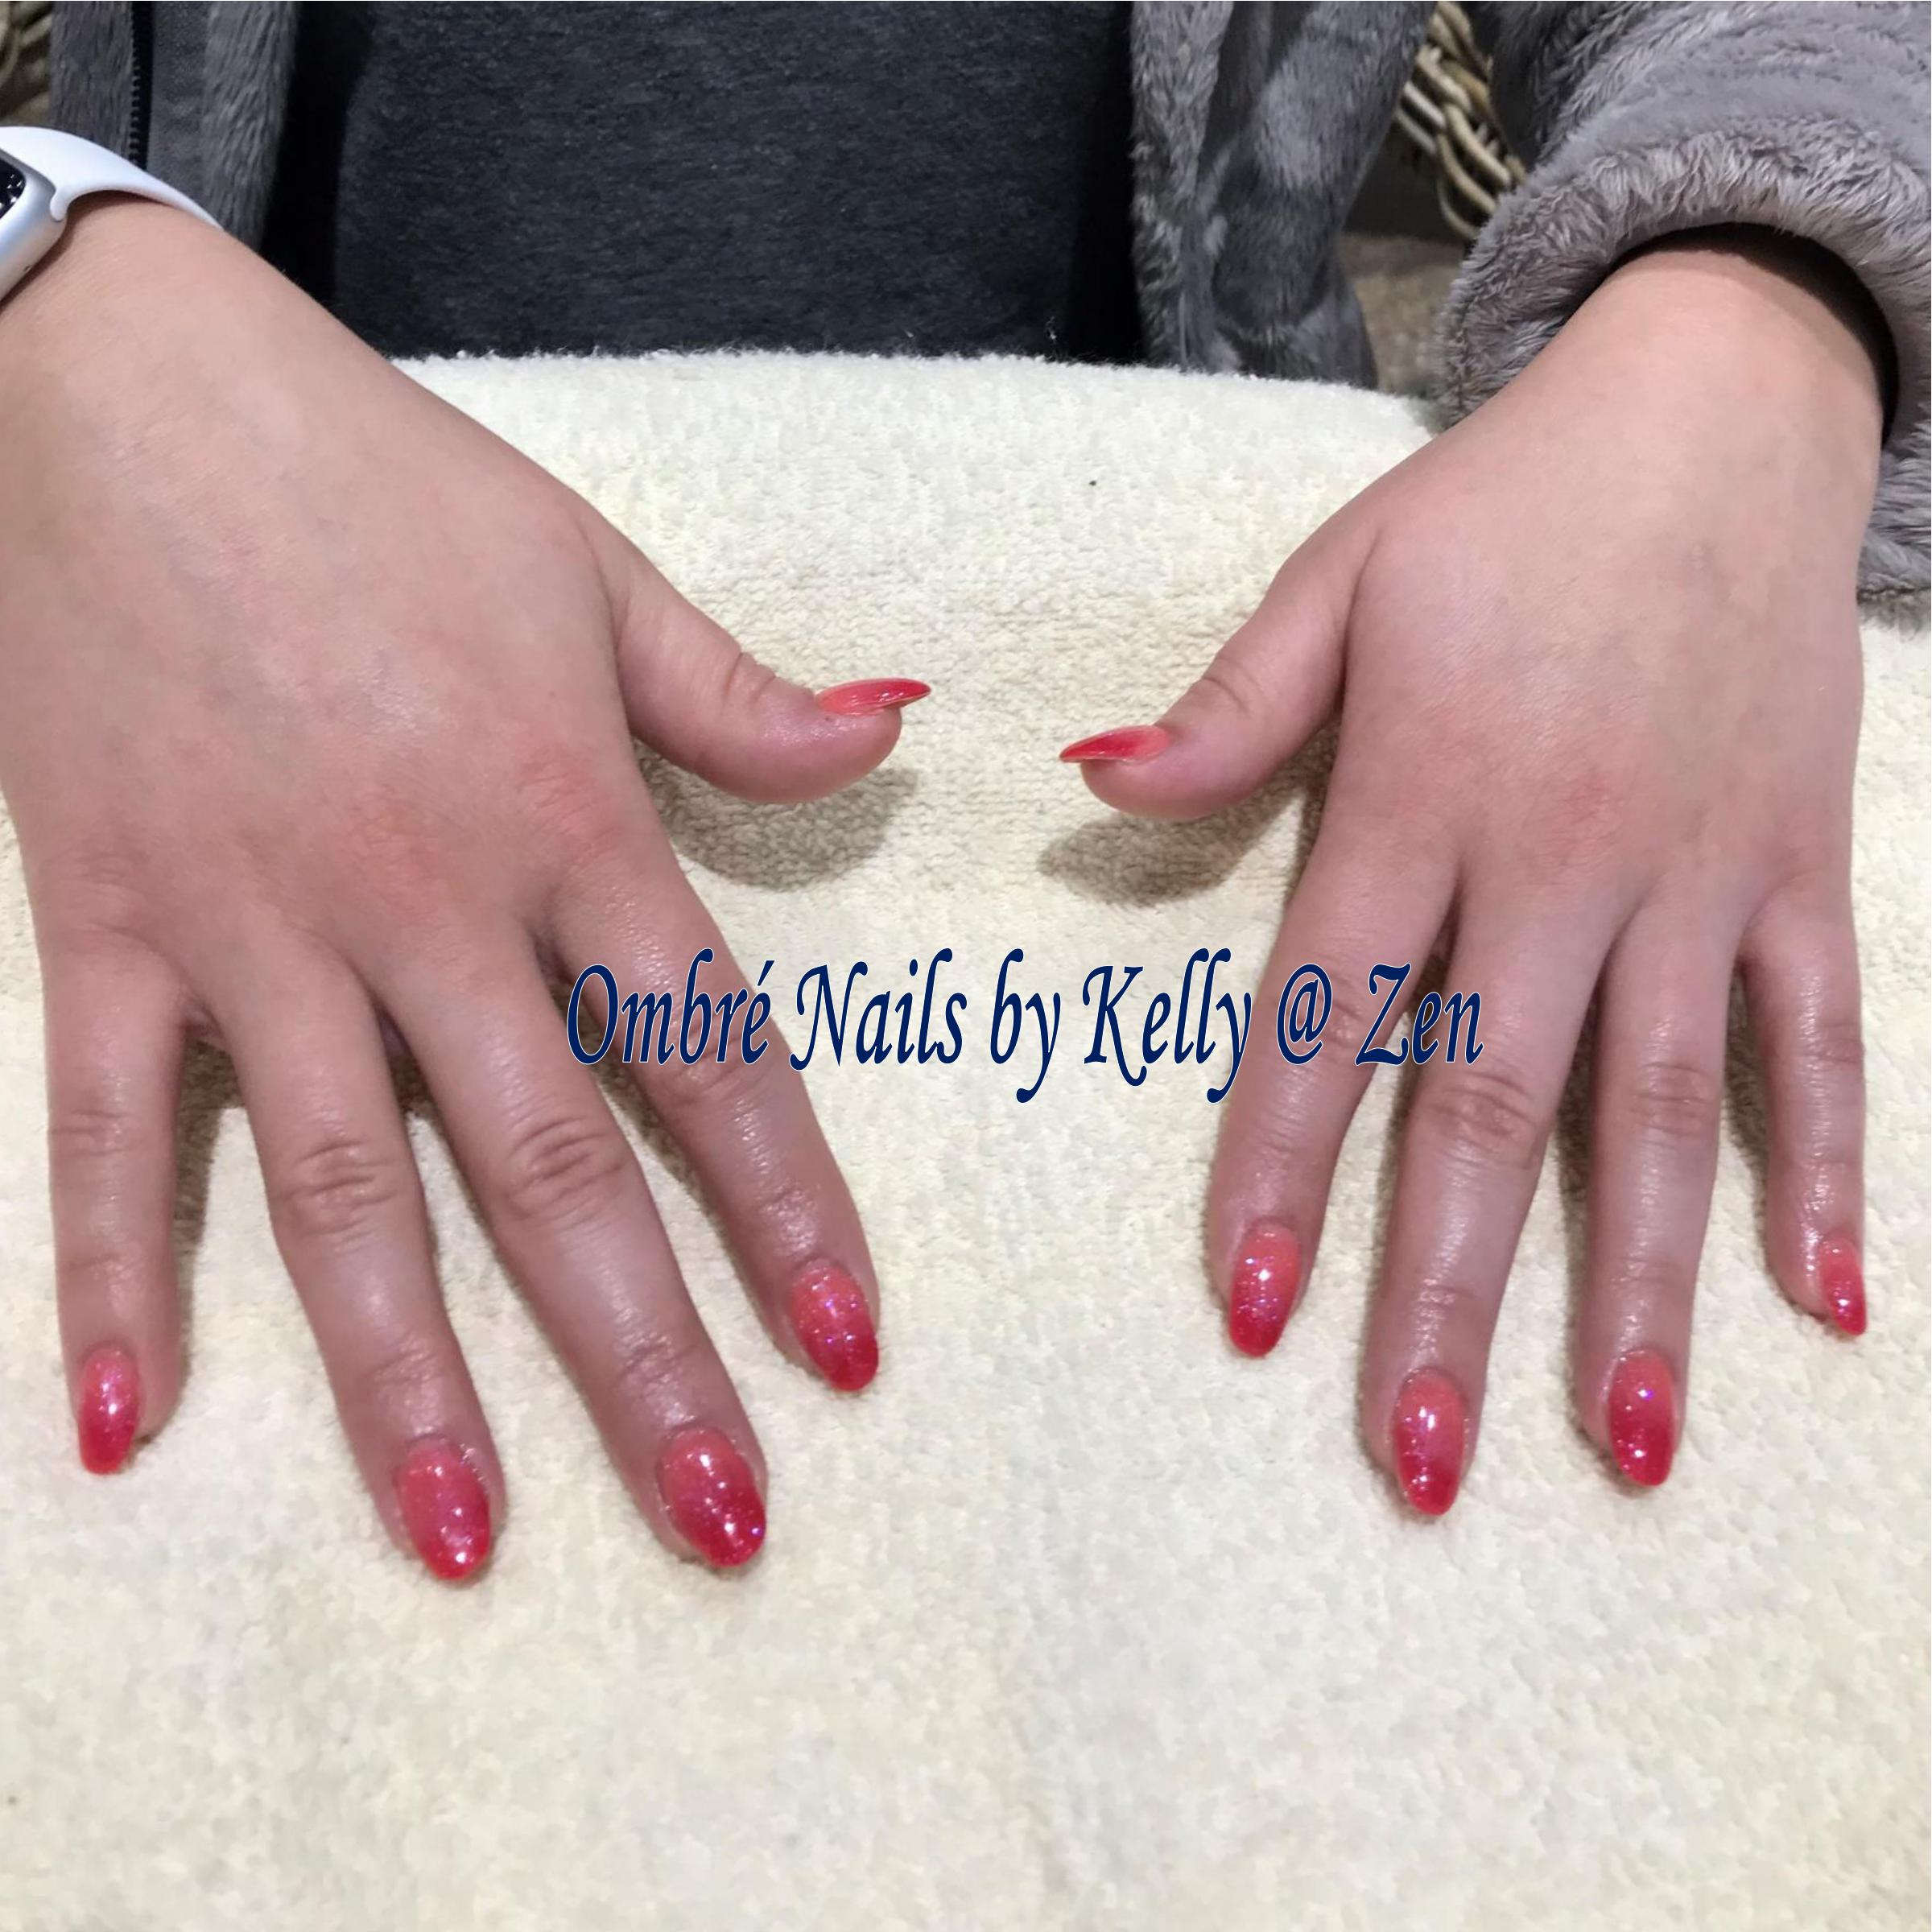 Ombré_Nails_by_Kelly_7552_0_(2)